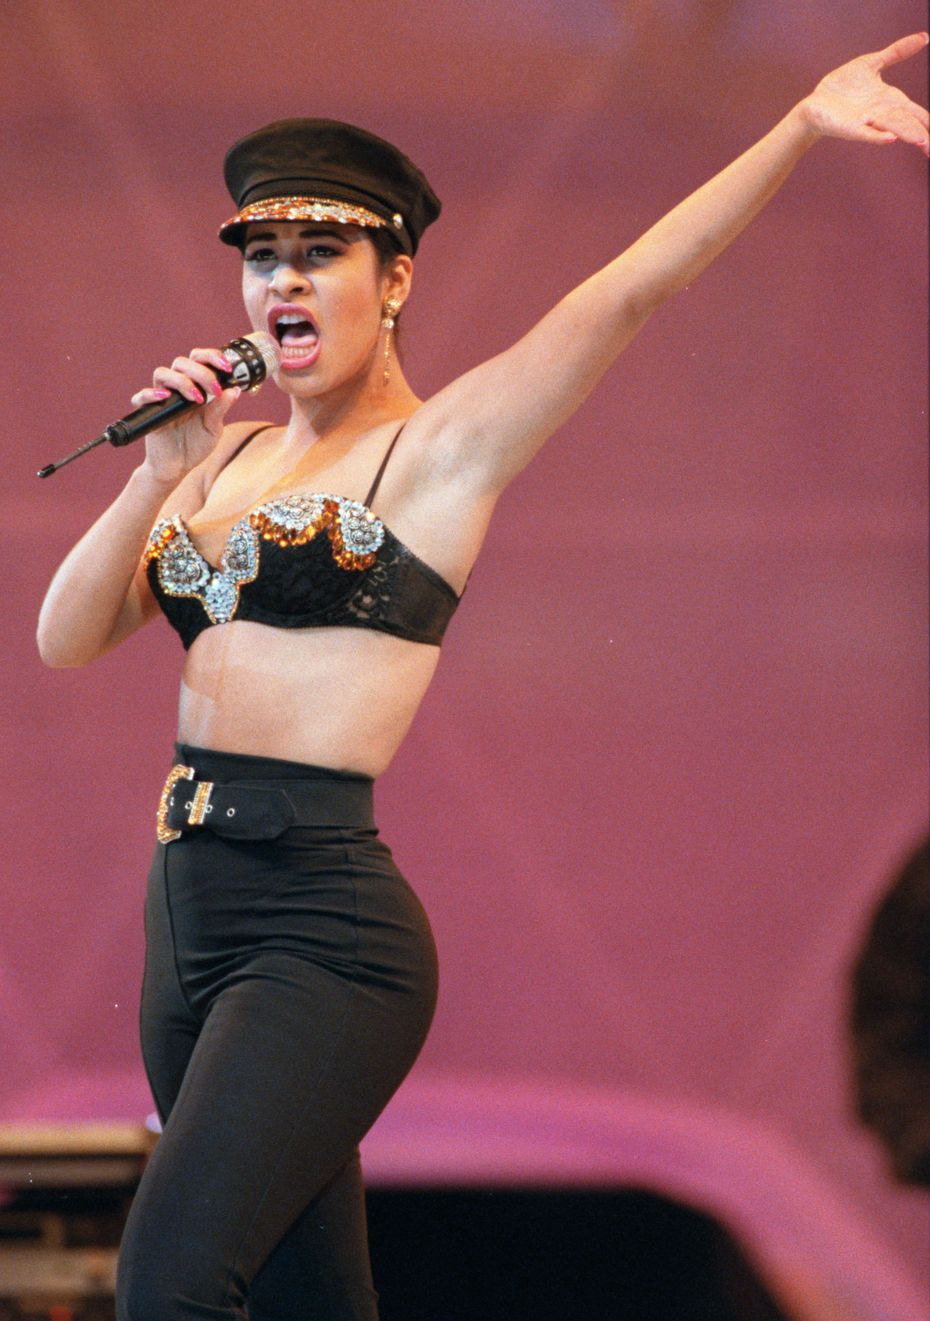 Selena in 1993, performing at the Astrodome.